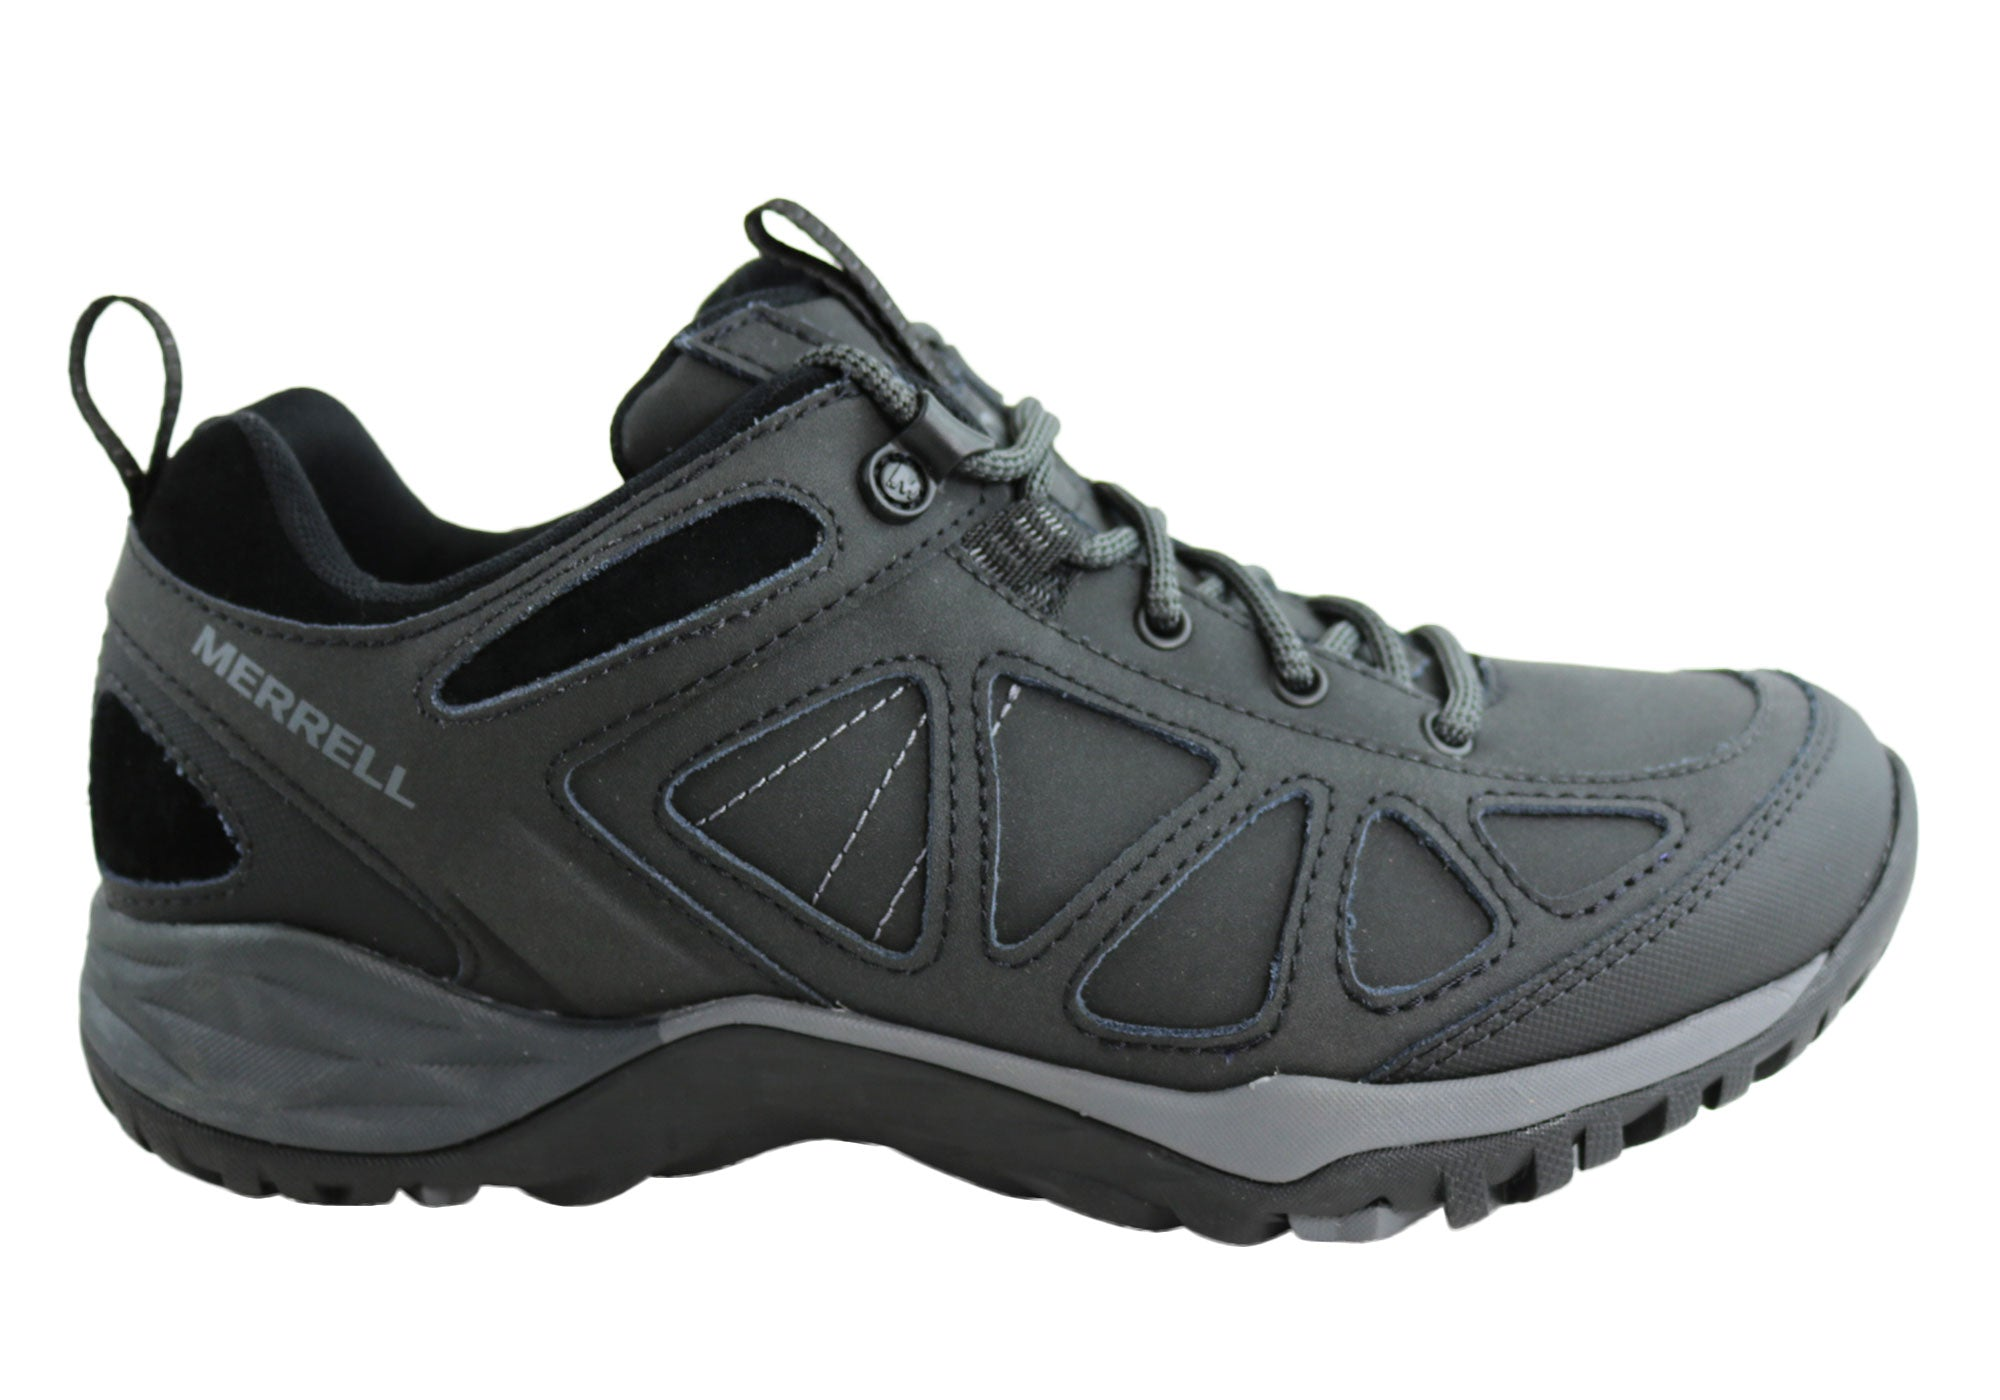 be09e2190e03 Merrell Siren Q2 Leather Waterproof Comfort Womens Hiking Shoes ...